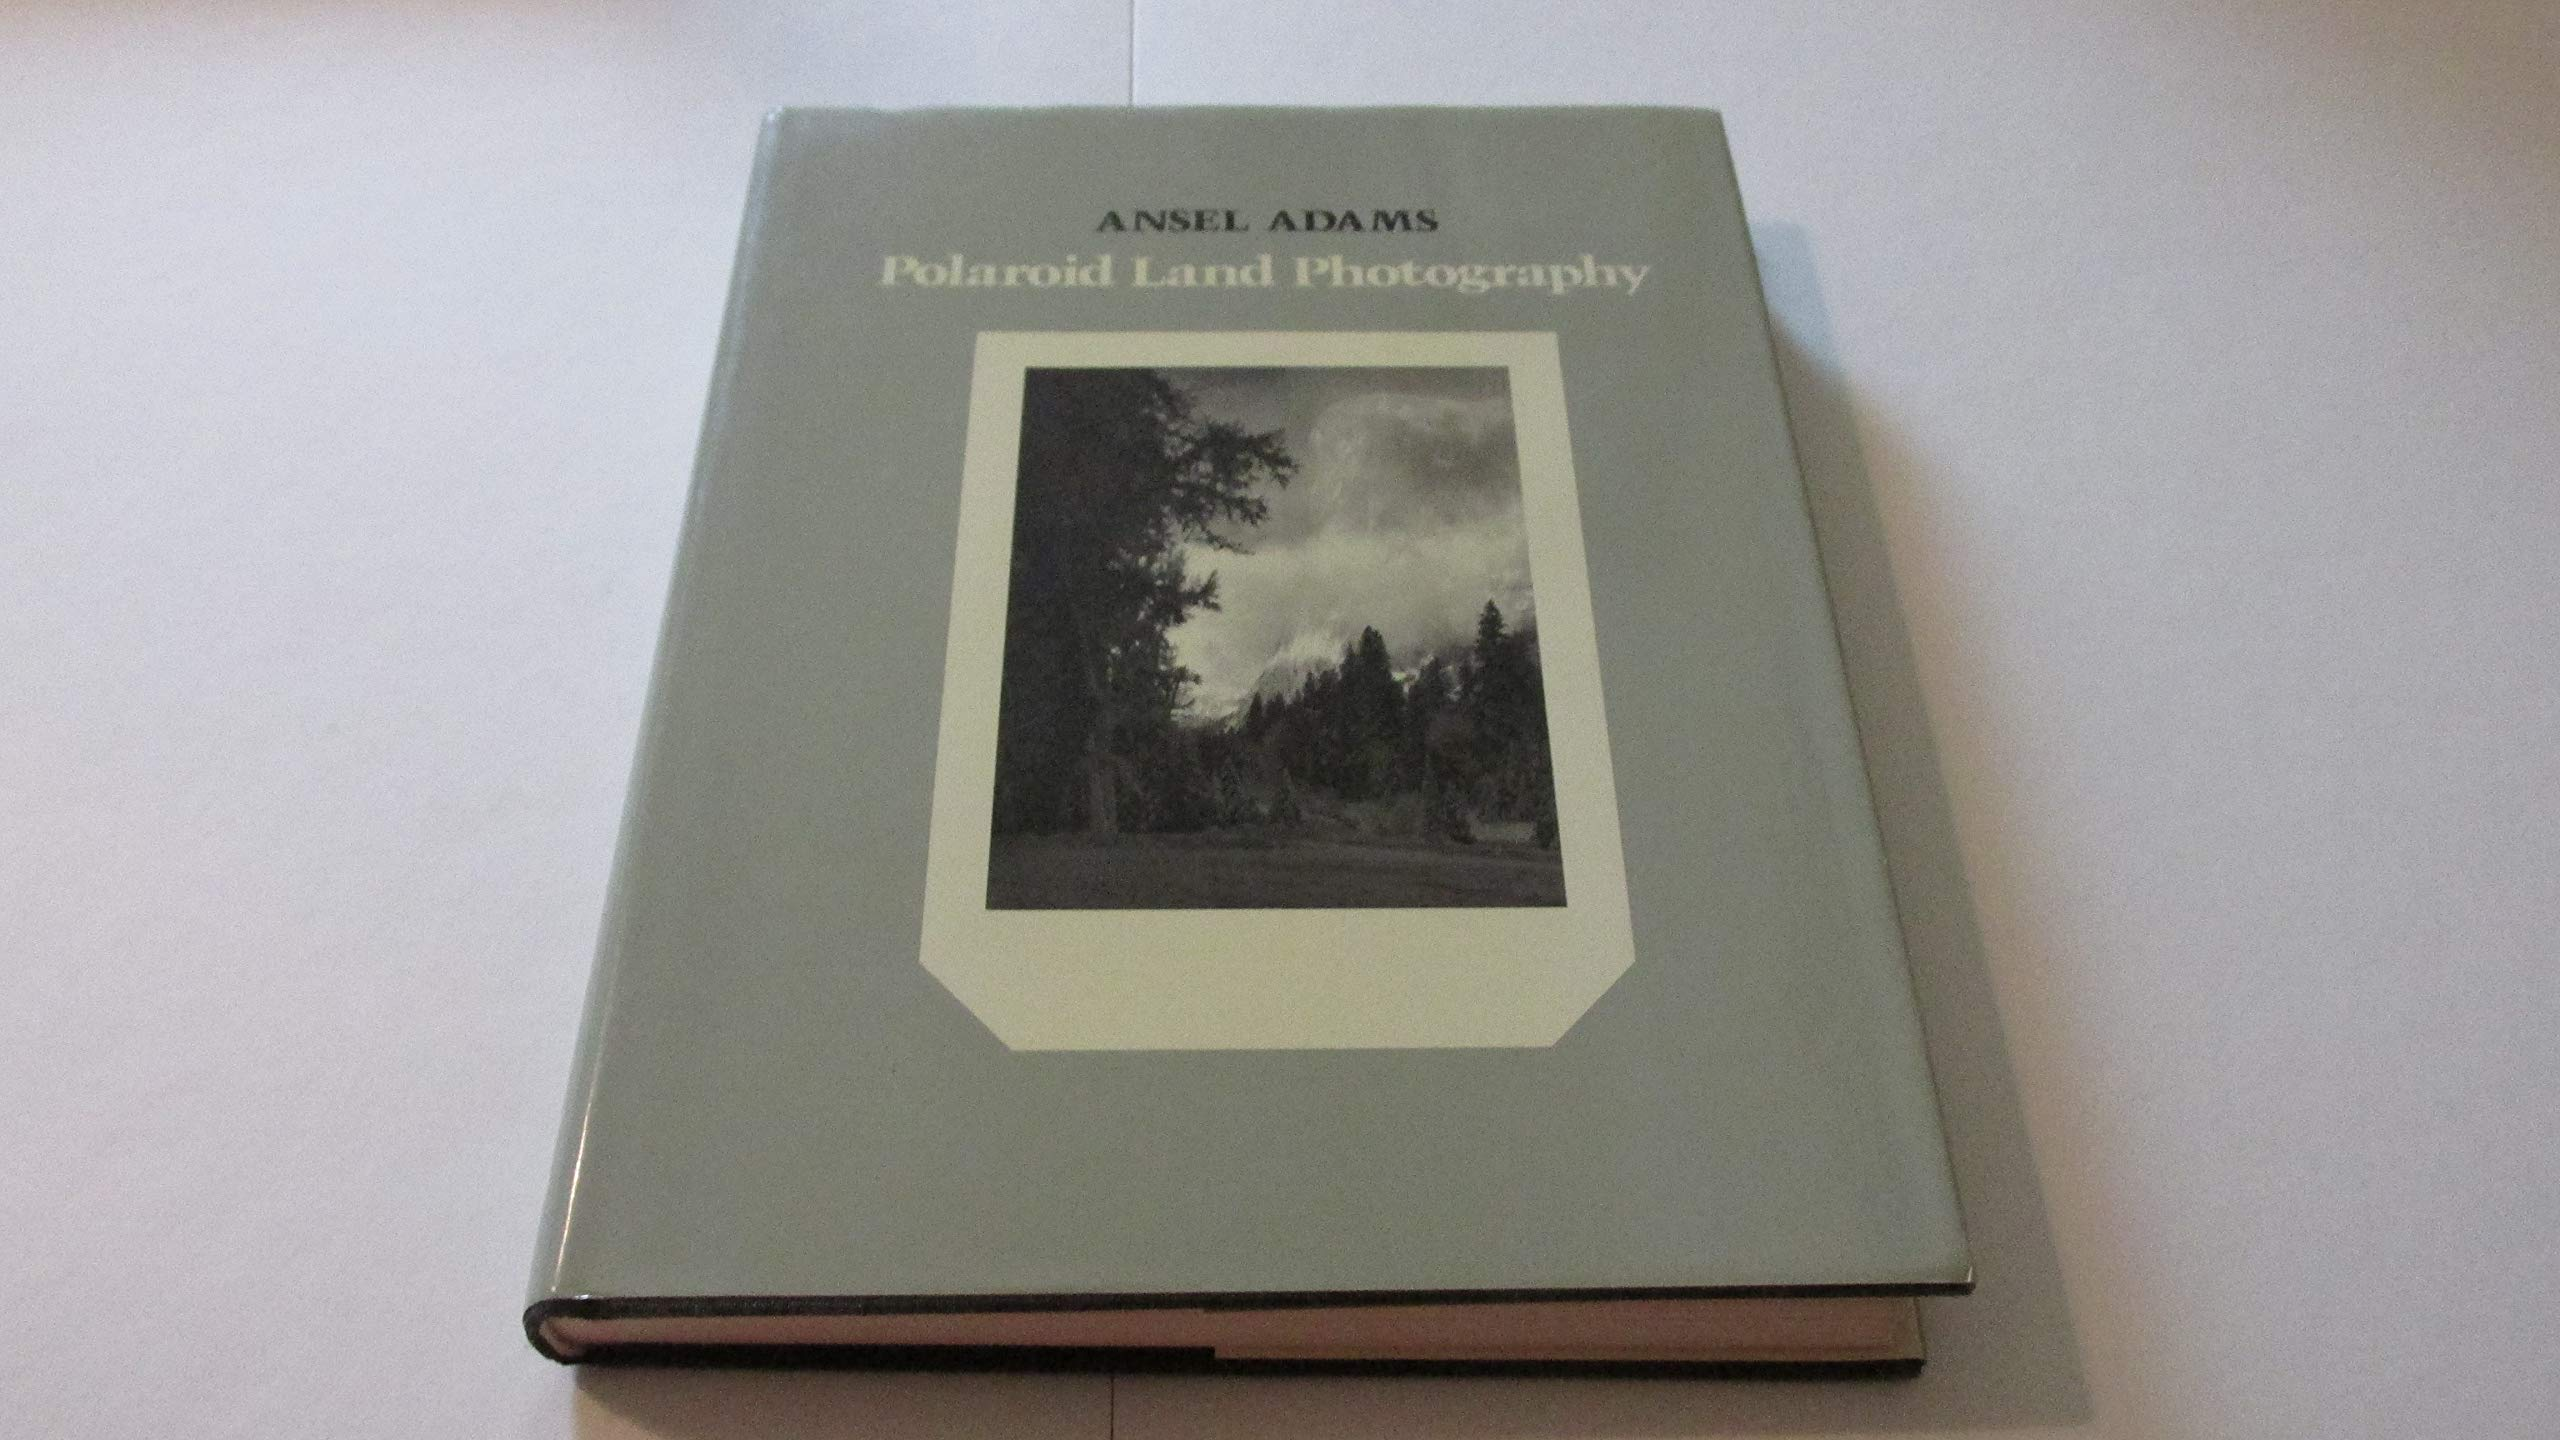 polaroid land photography by ansel adams 1979 04 27